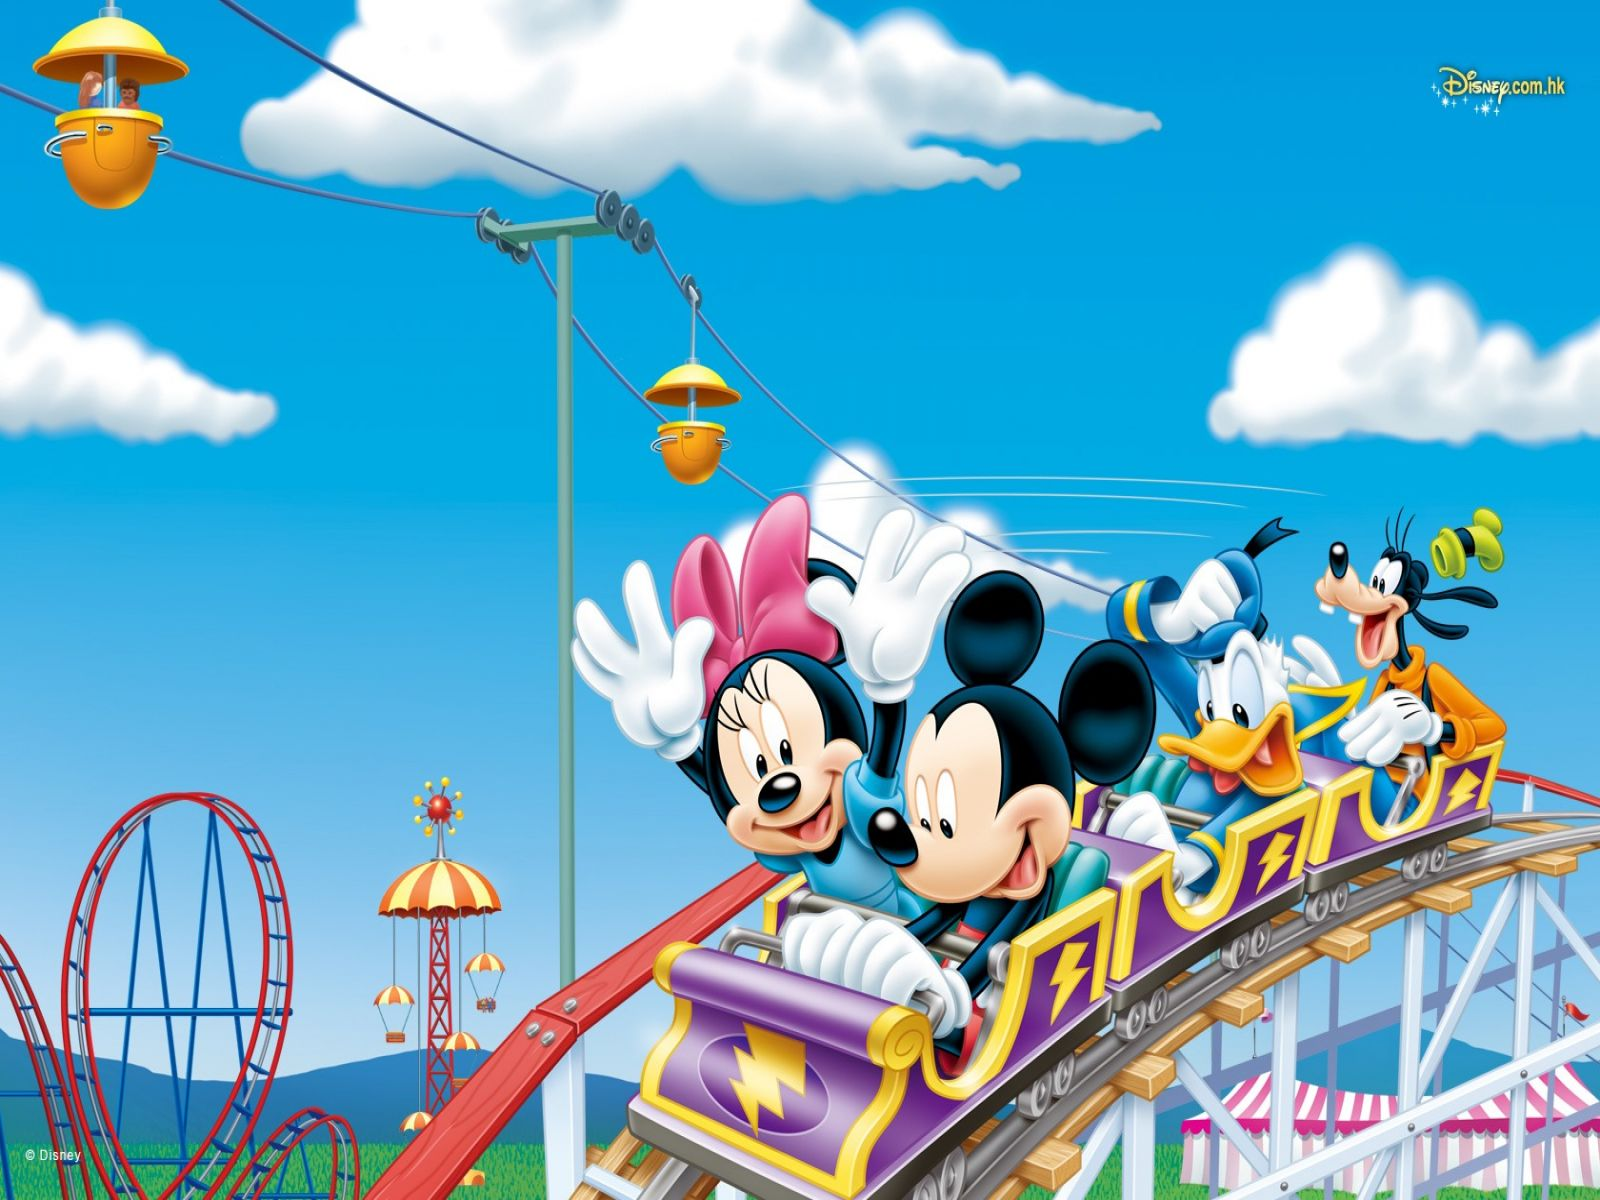 Disney cartoon wallpapers desktop wallpaper disney cartoon wallpaper 1600x1200